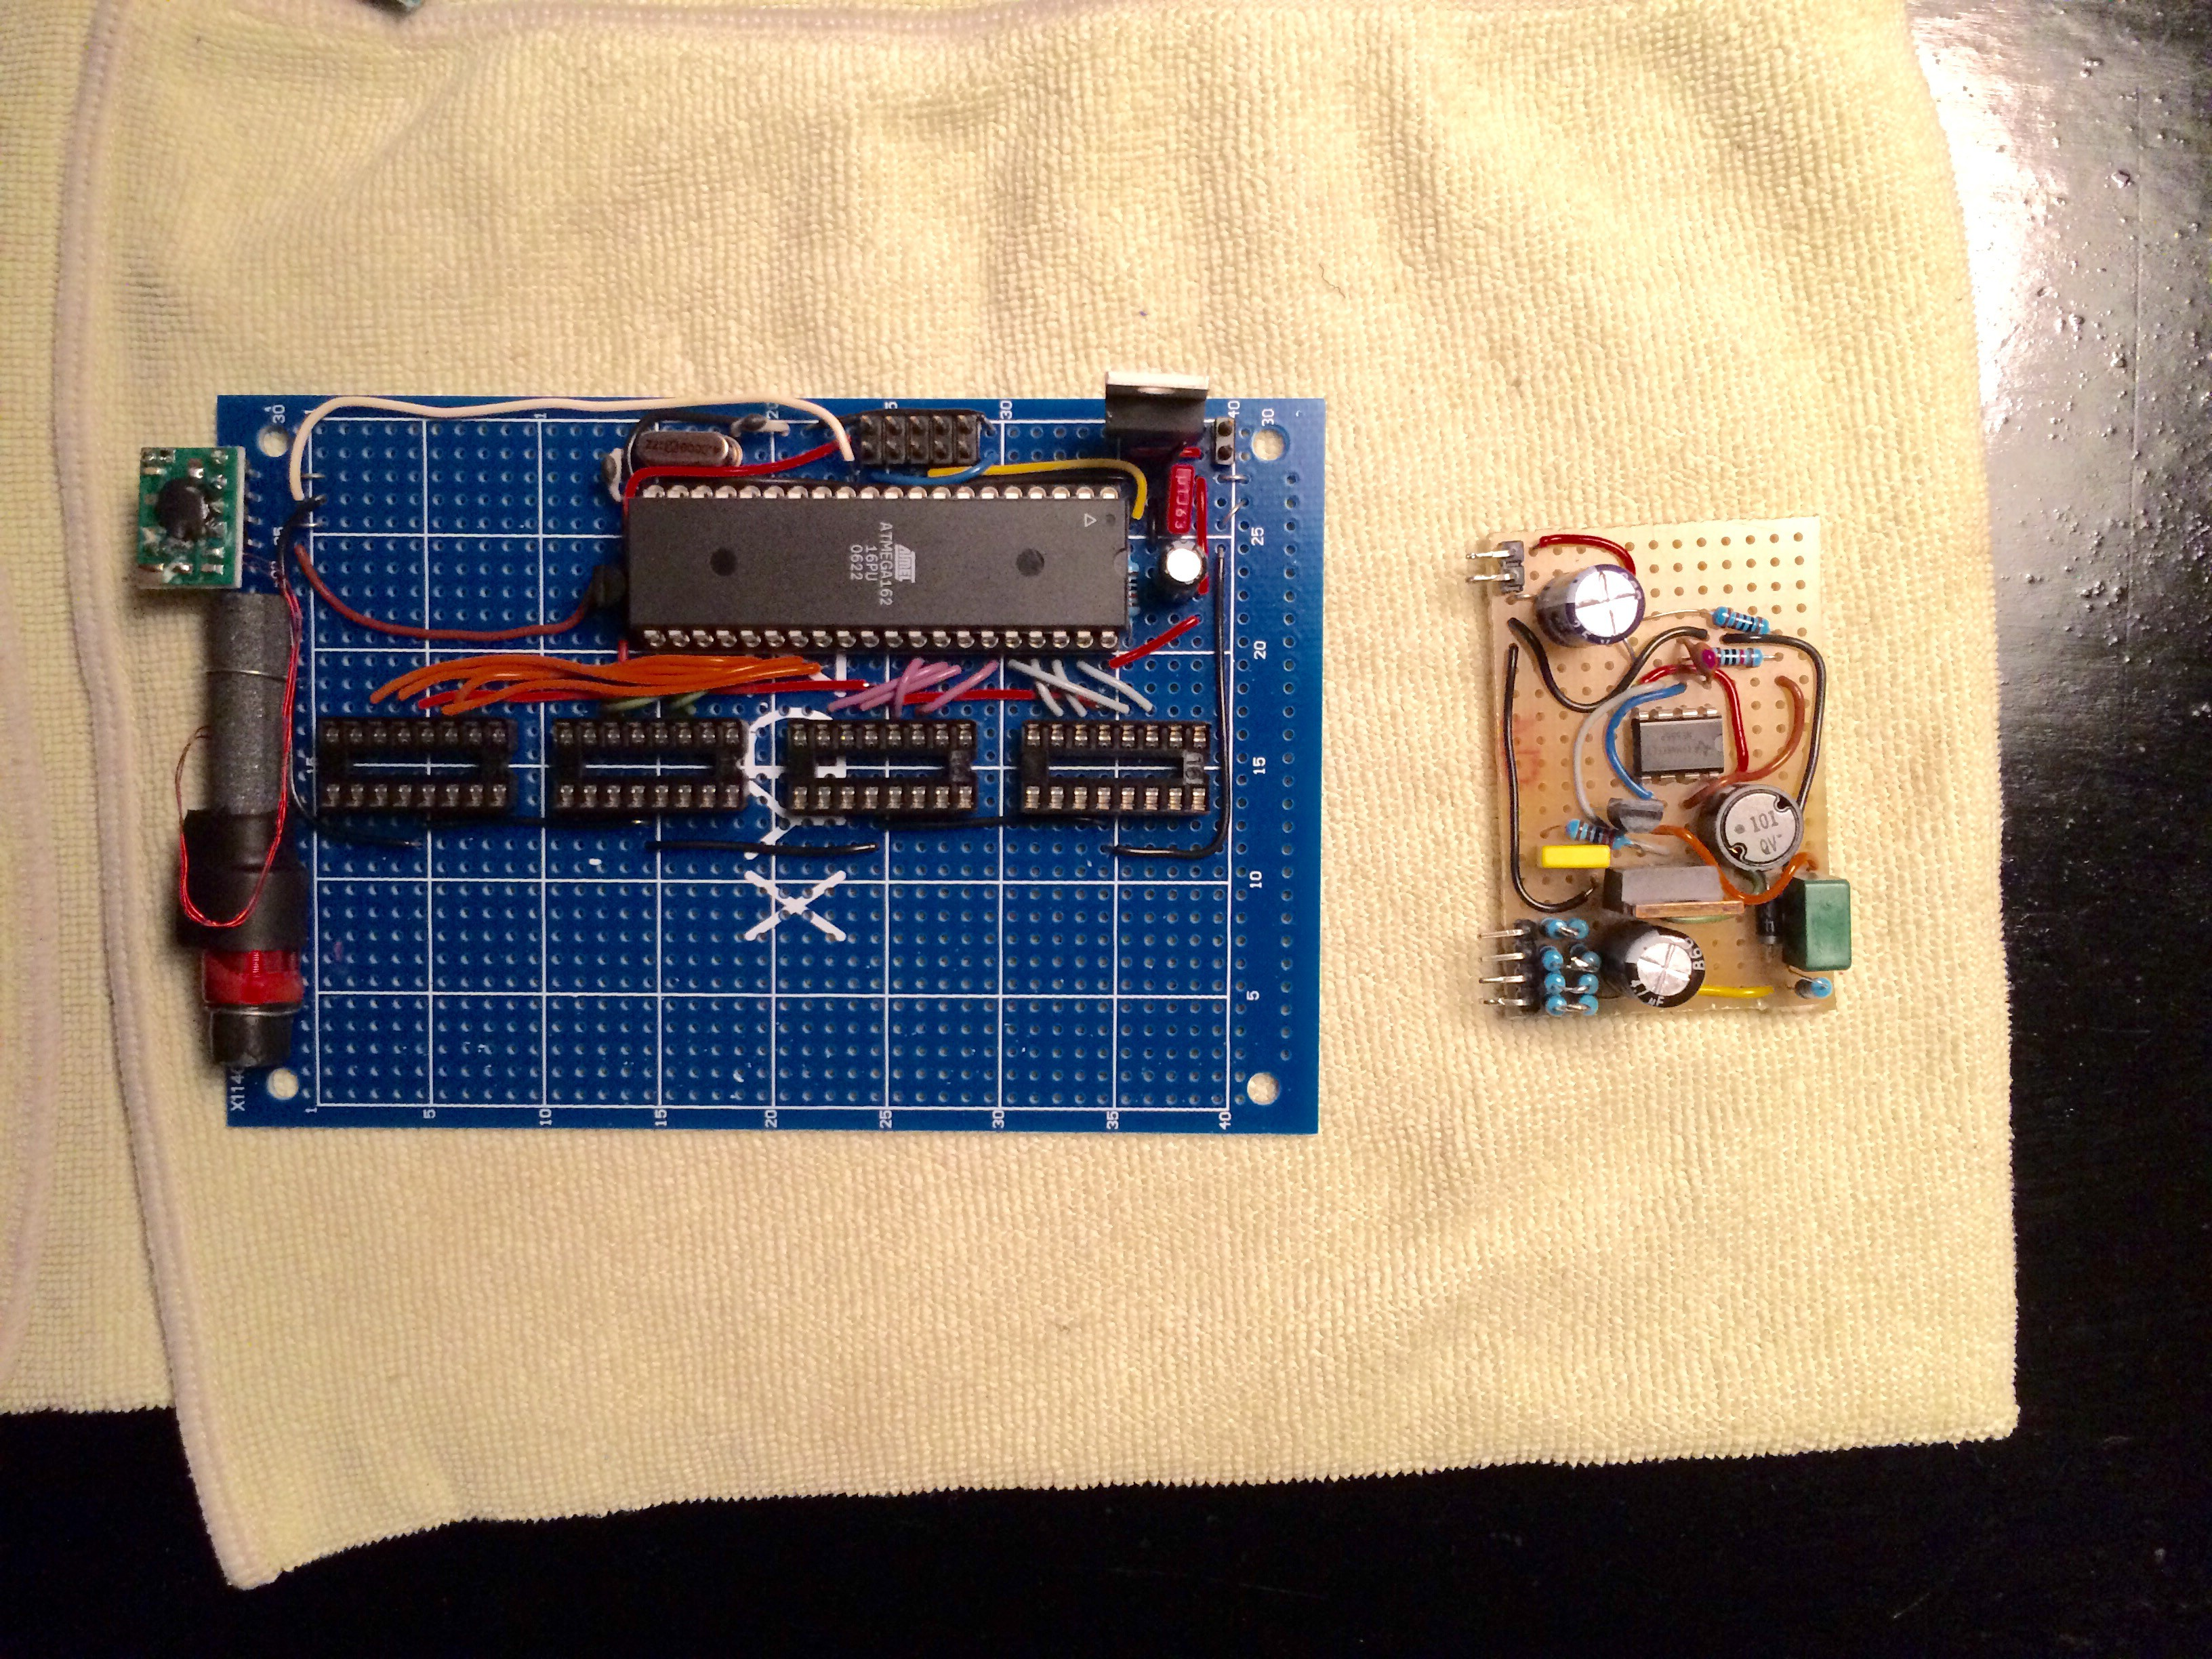 Project Gps Nixie Alarm Clock Gallery Breadboard Power Supply Diy Kit Buildcircuit The Dcf 77 Receiver I First Planned To Use For Time Sync On Left My Crude Hv Psu Right